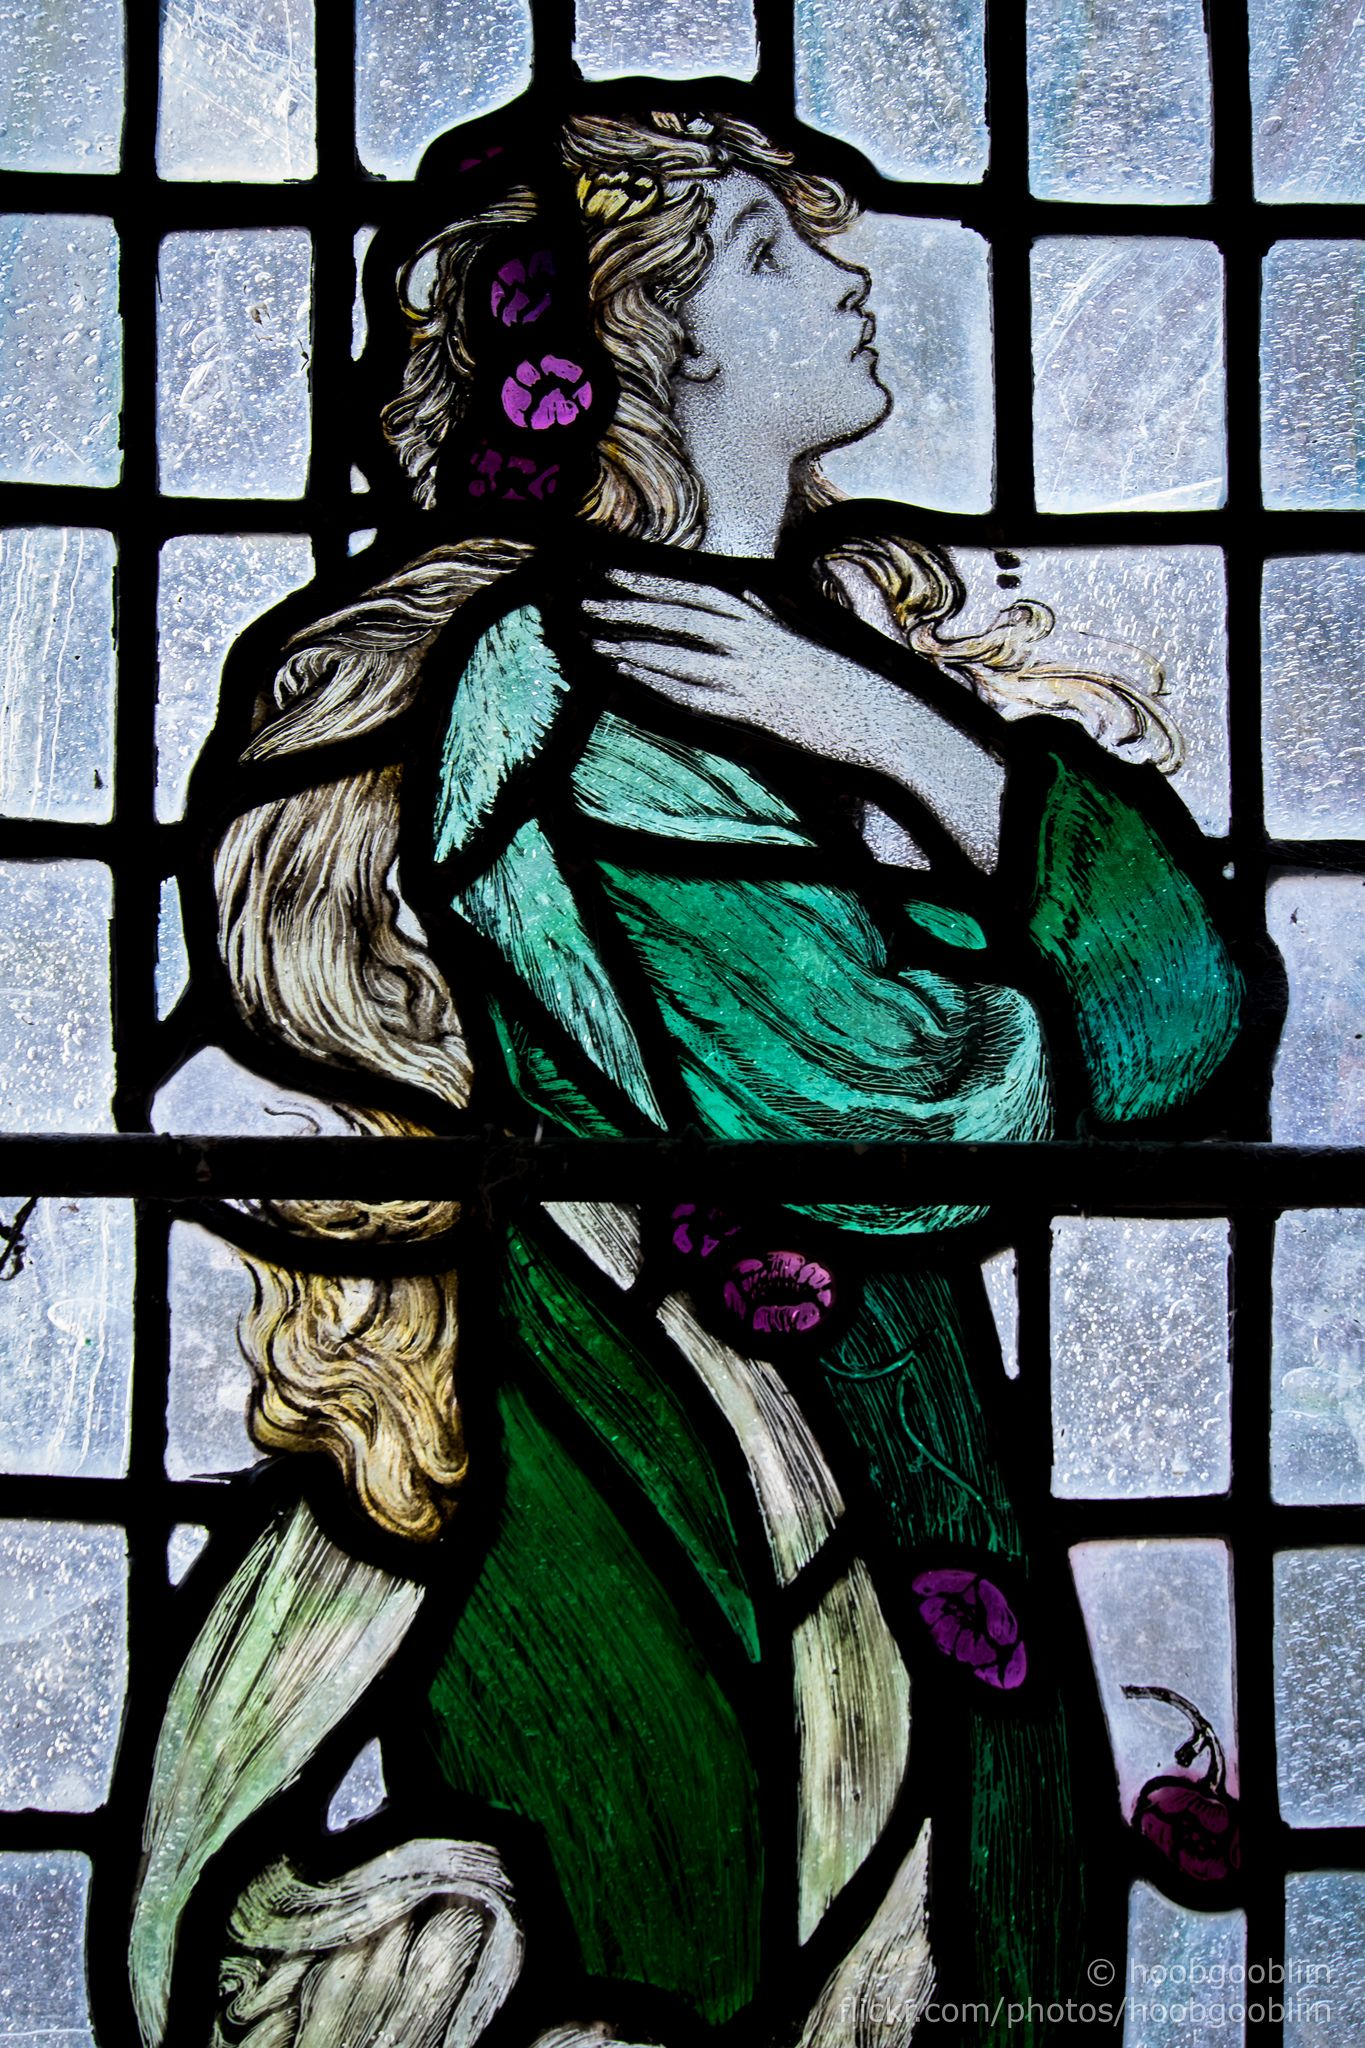 https://flic.kr/p/rdndpL | Hope 1938 | Stained glass window by Louis Davis 1938 depicting Hope. Based on his wife Edith Webster. Part of a set of 3 windows at All Saints Church, Longstanton, Cambridgeshire, UK.